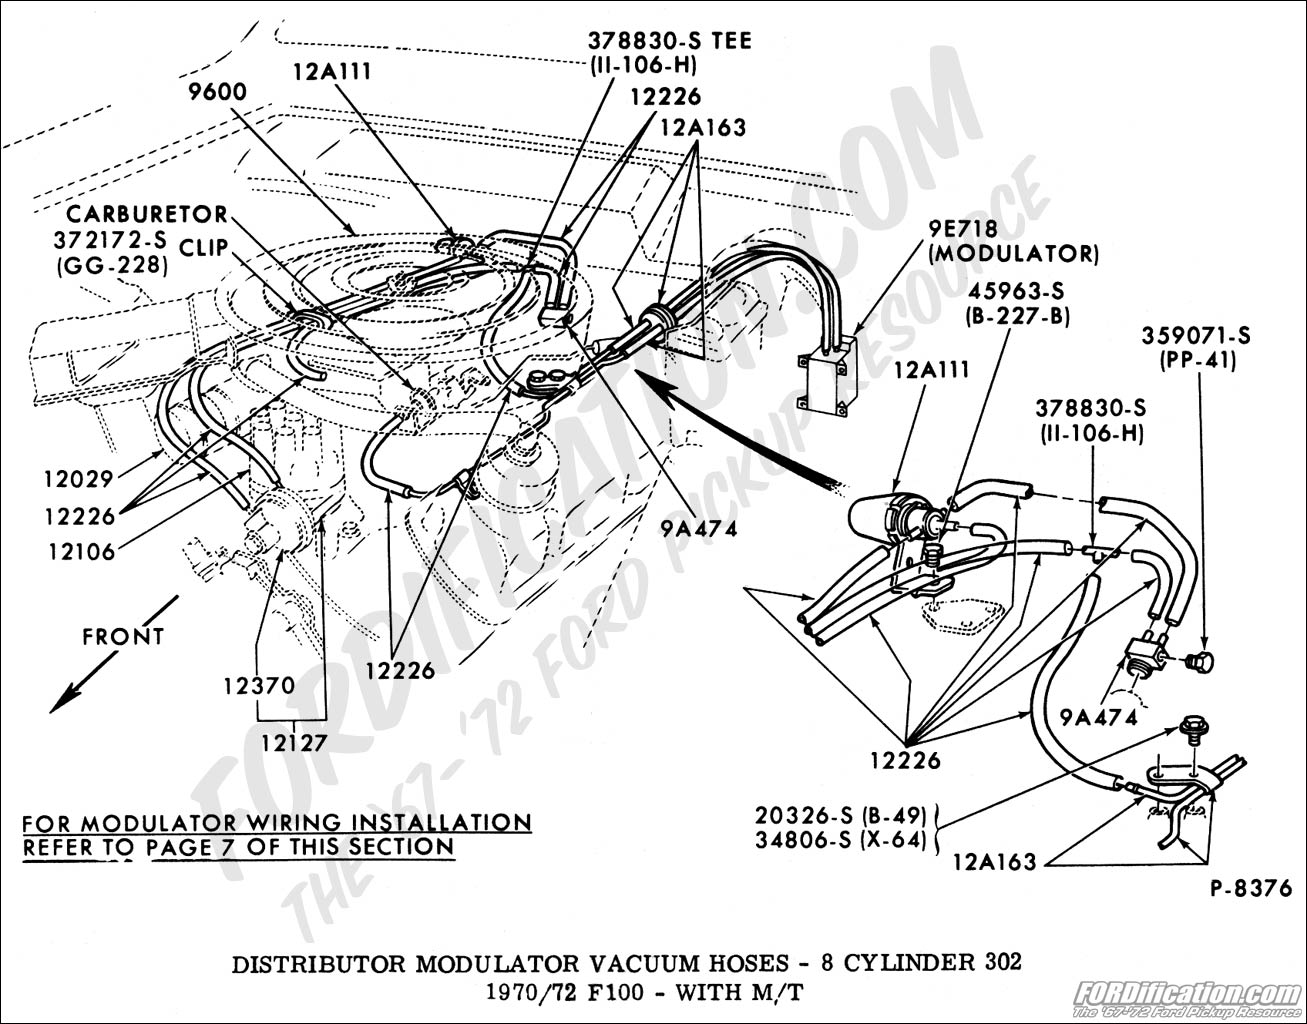 Schematics_i on Chevy 350 Intake Manifold Diagram